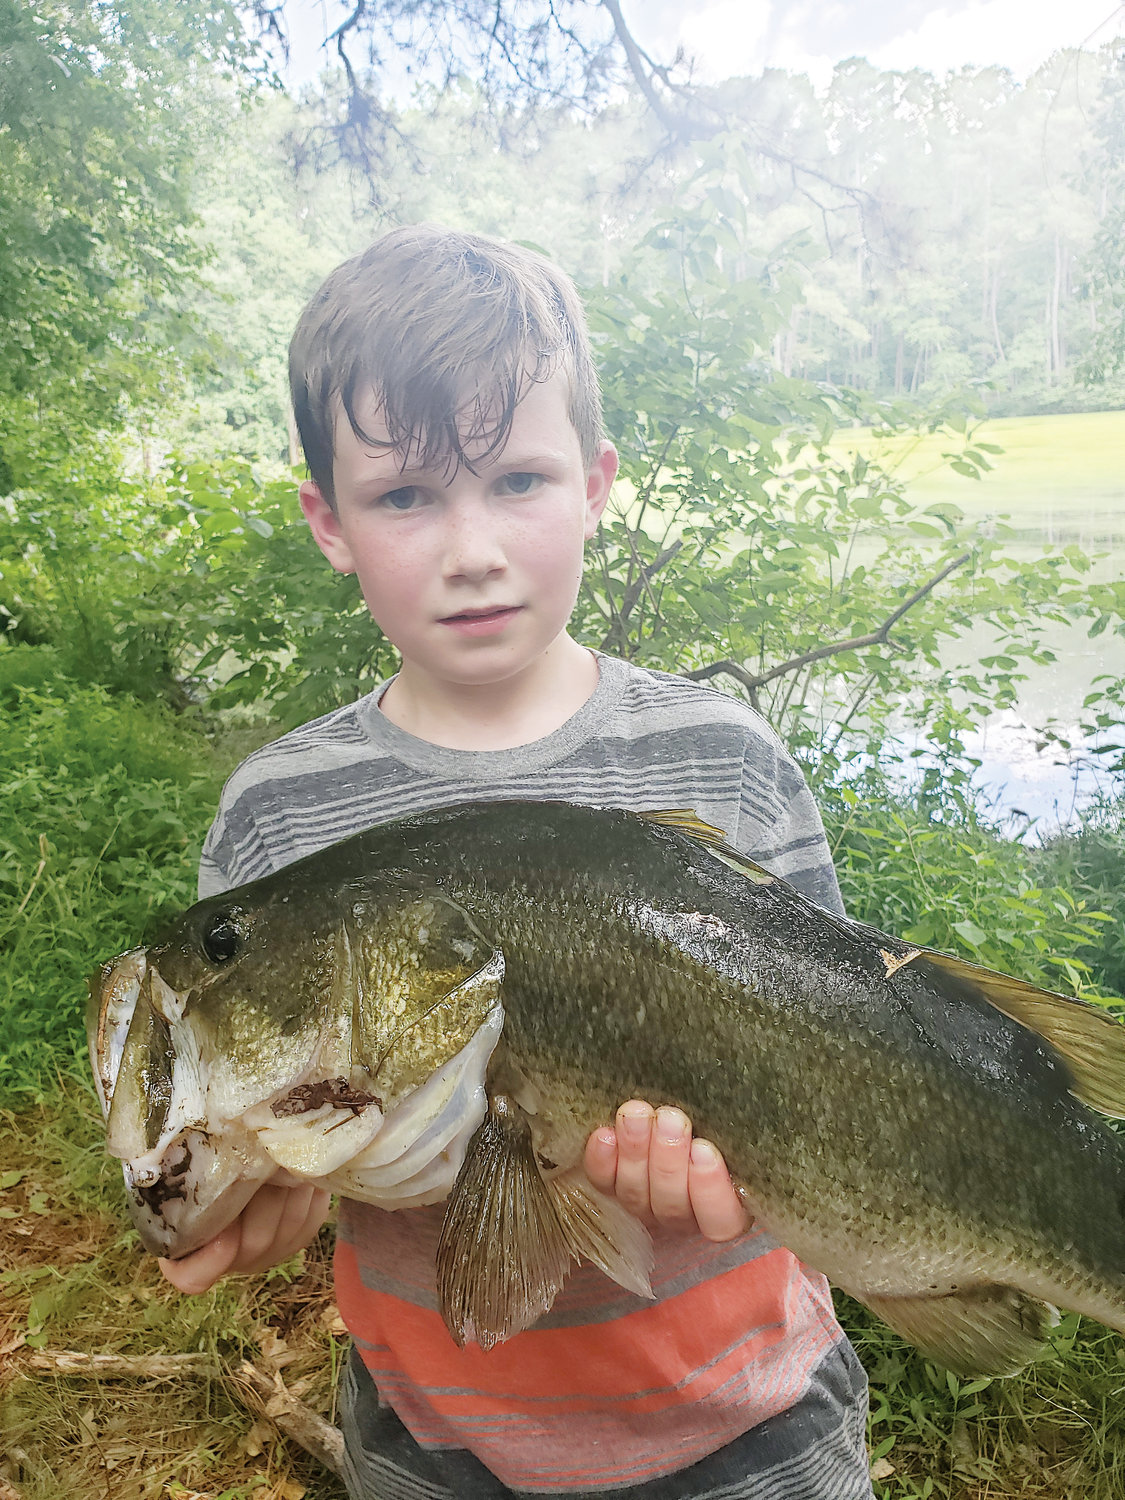 Landon Sharpe, son of Bryan and Lauren Sharpe of Dunn, caught a nice largemouth bass at an undisclosed location in Dunn on Saturday. He used a culprit worm from the Erwin Fish Box. 'He's 9 years old and is already the best fisherman in a family full of fishermen,' his father said. 'We released it. We are big on letting the big ones go so they can be caught again.'